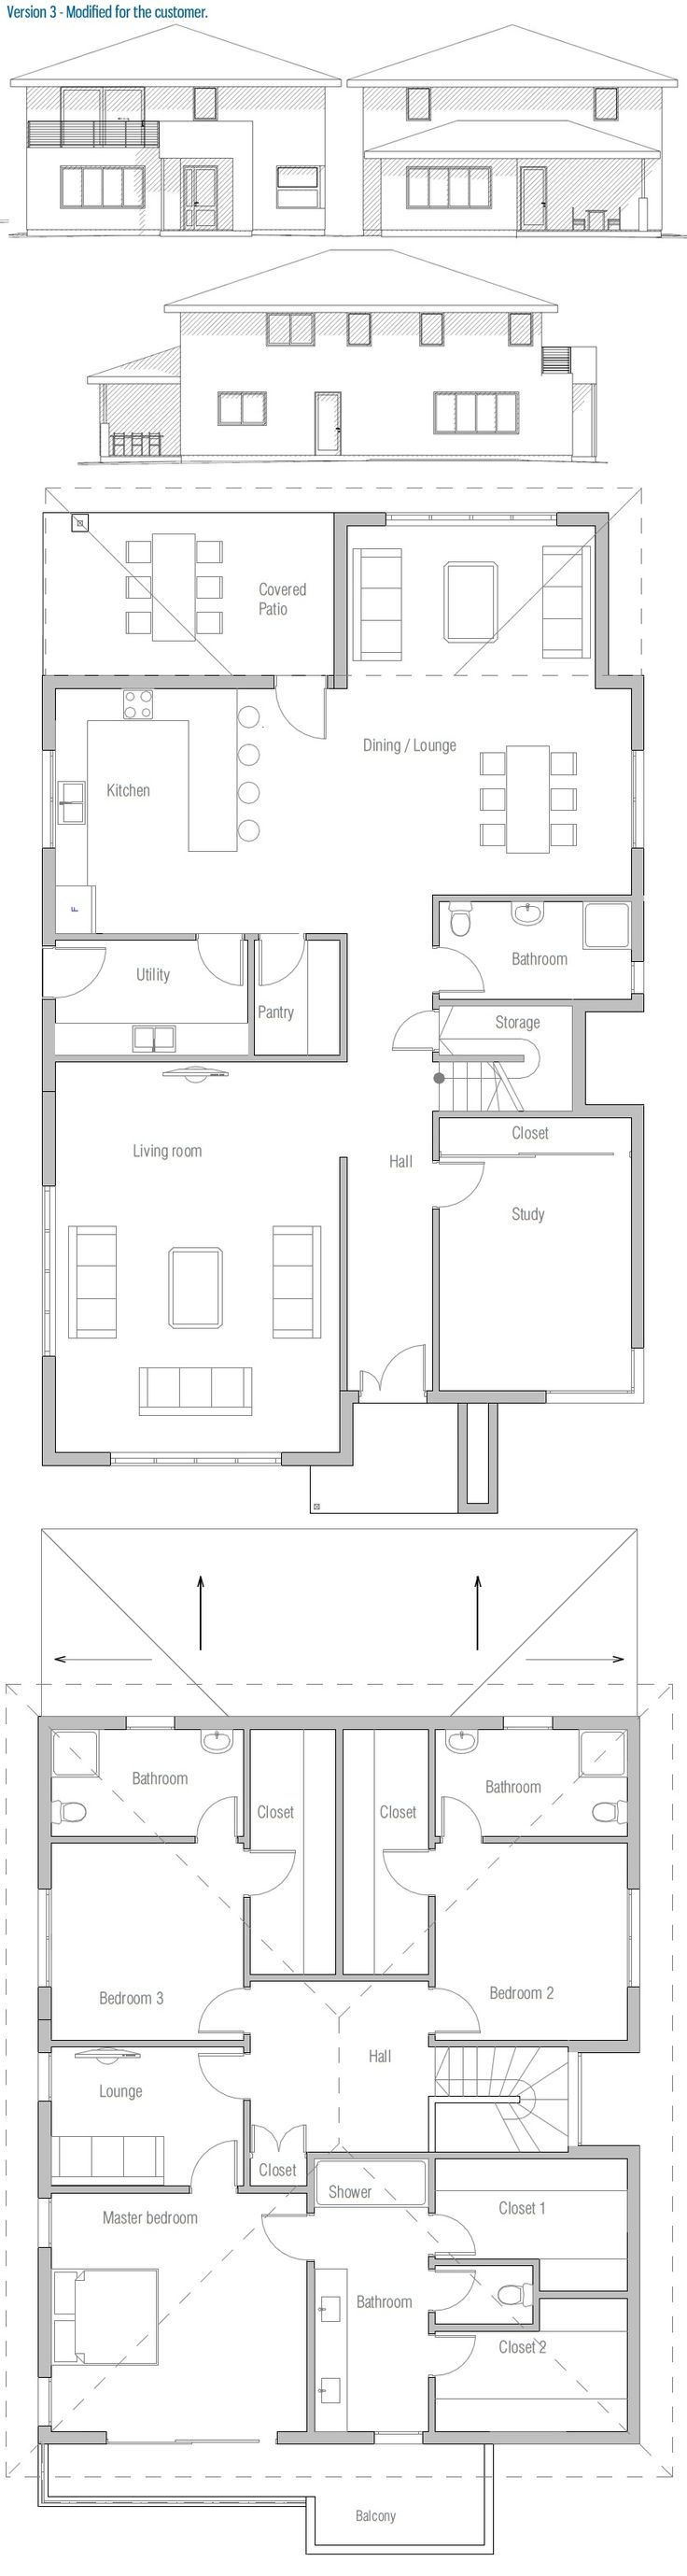 Architecture House Design Drawing best 25+ drawing house plans ideas on pinterest | floor plan